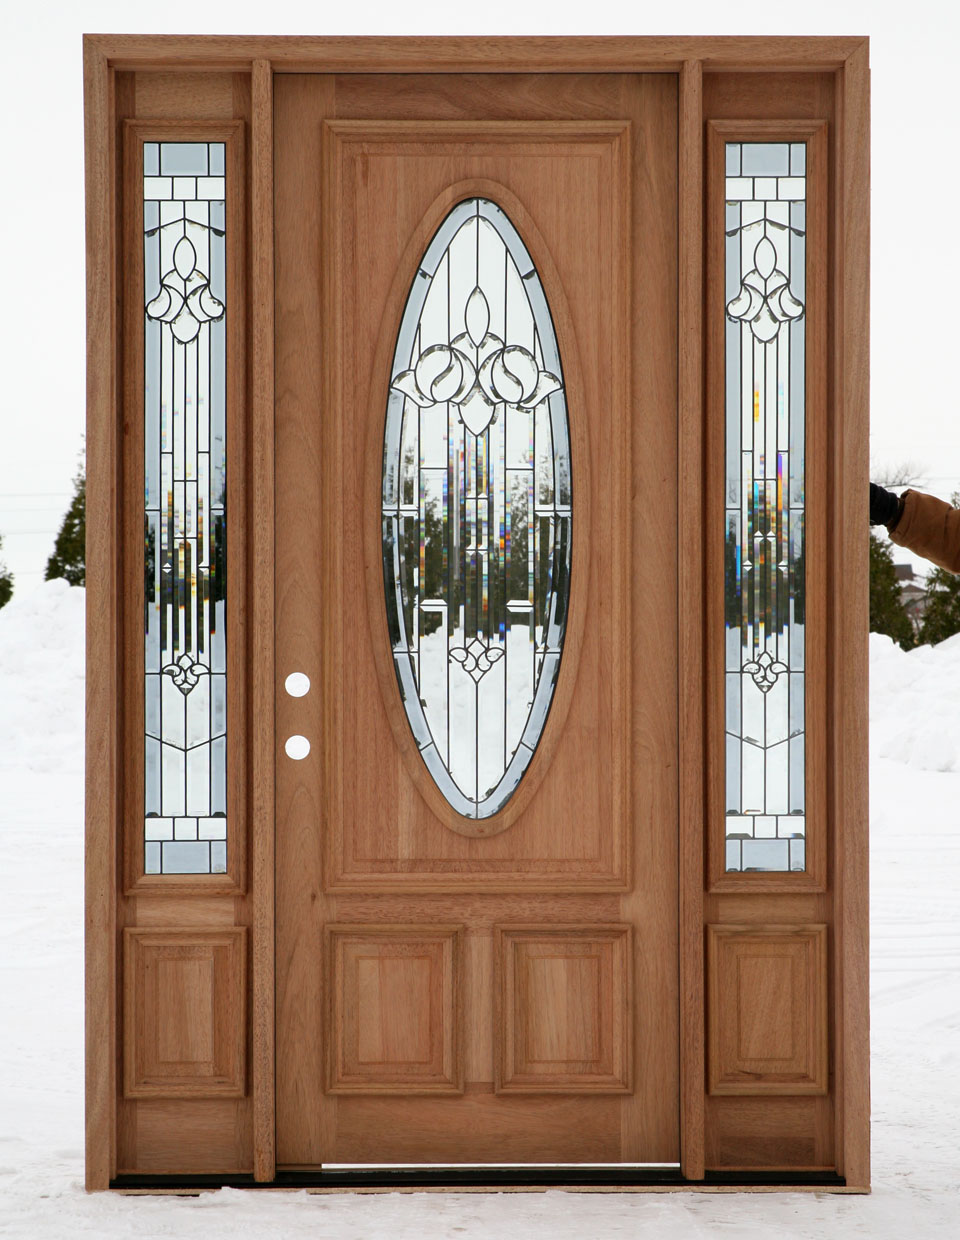 10 stylish and grate entry door designs interior for All door design